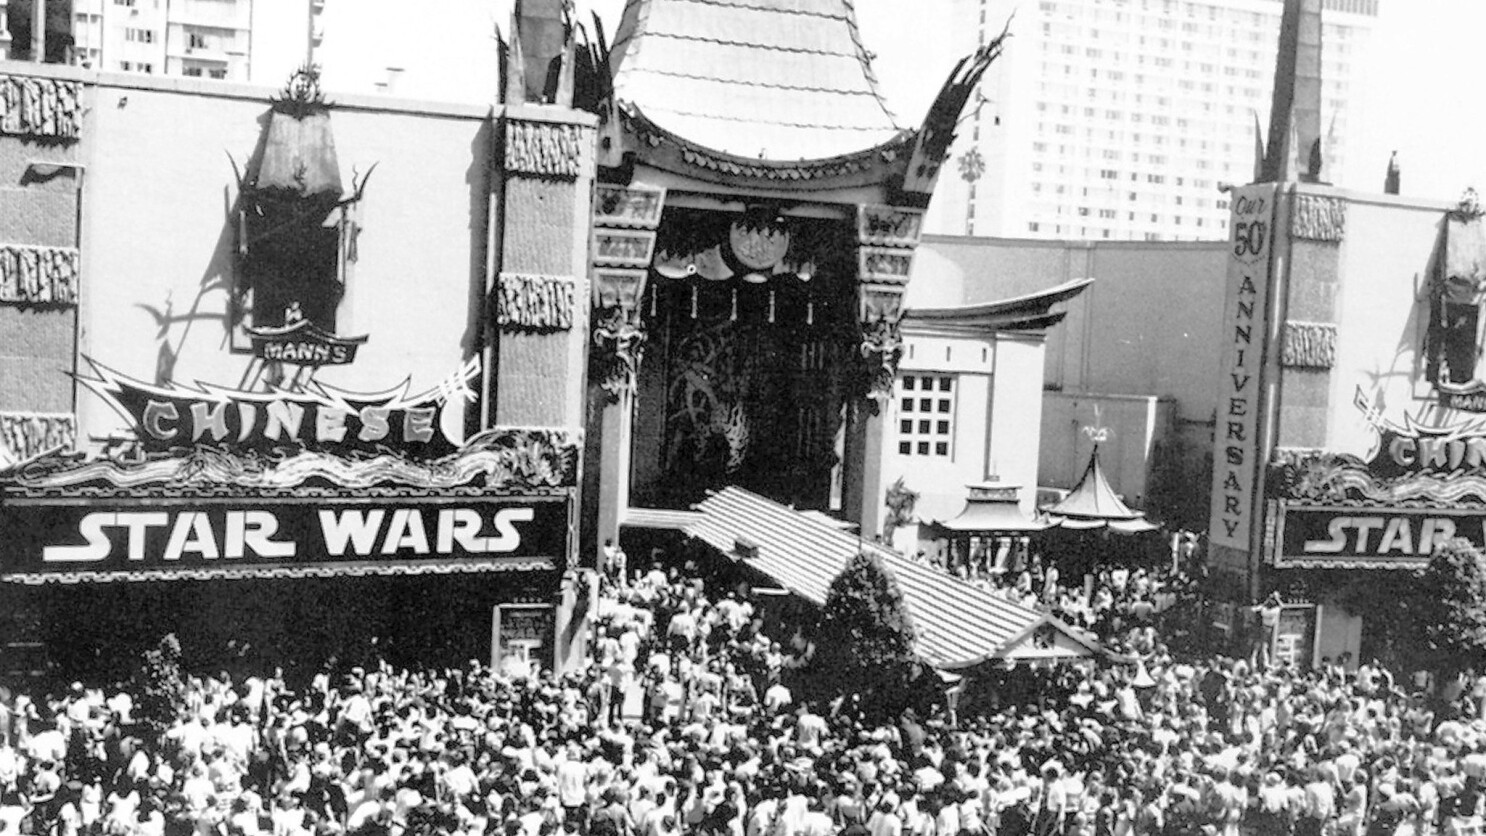 Analysis: In the 'Star Wars: The Force Awakens' unveiling, 1977 meets 2015 - Los Angeles Times